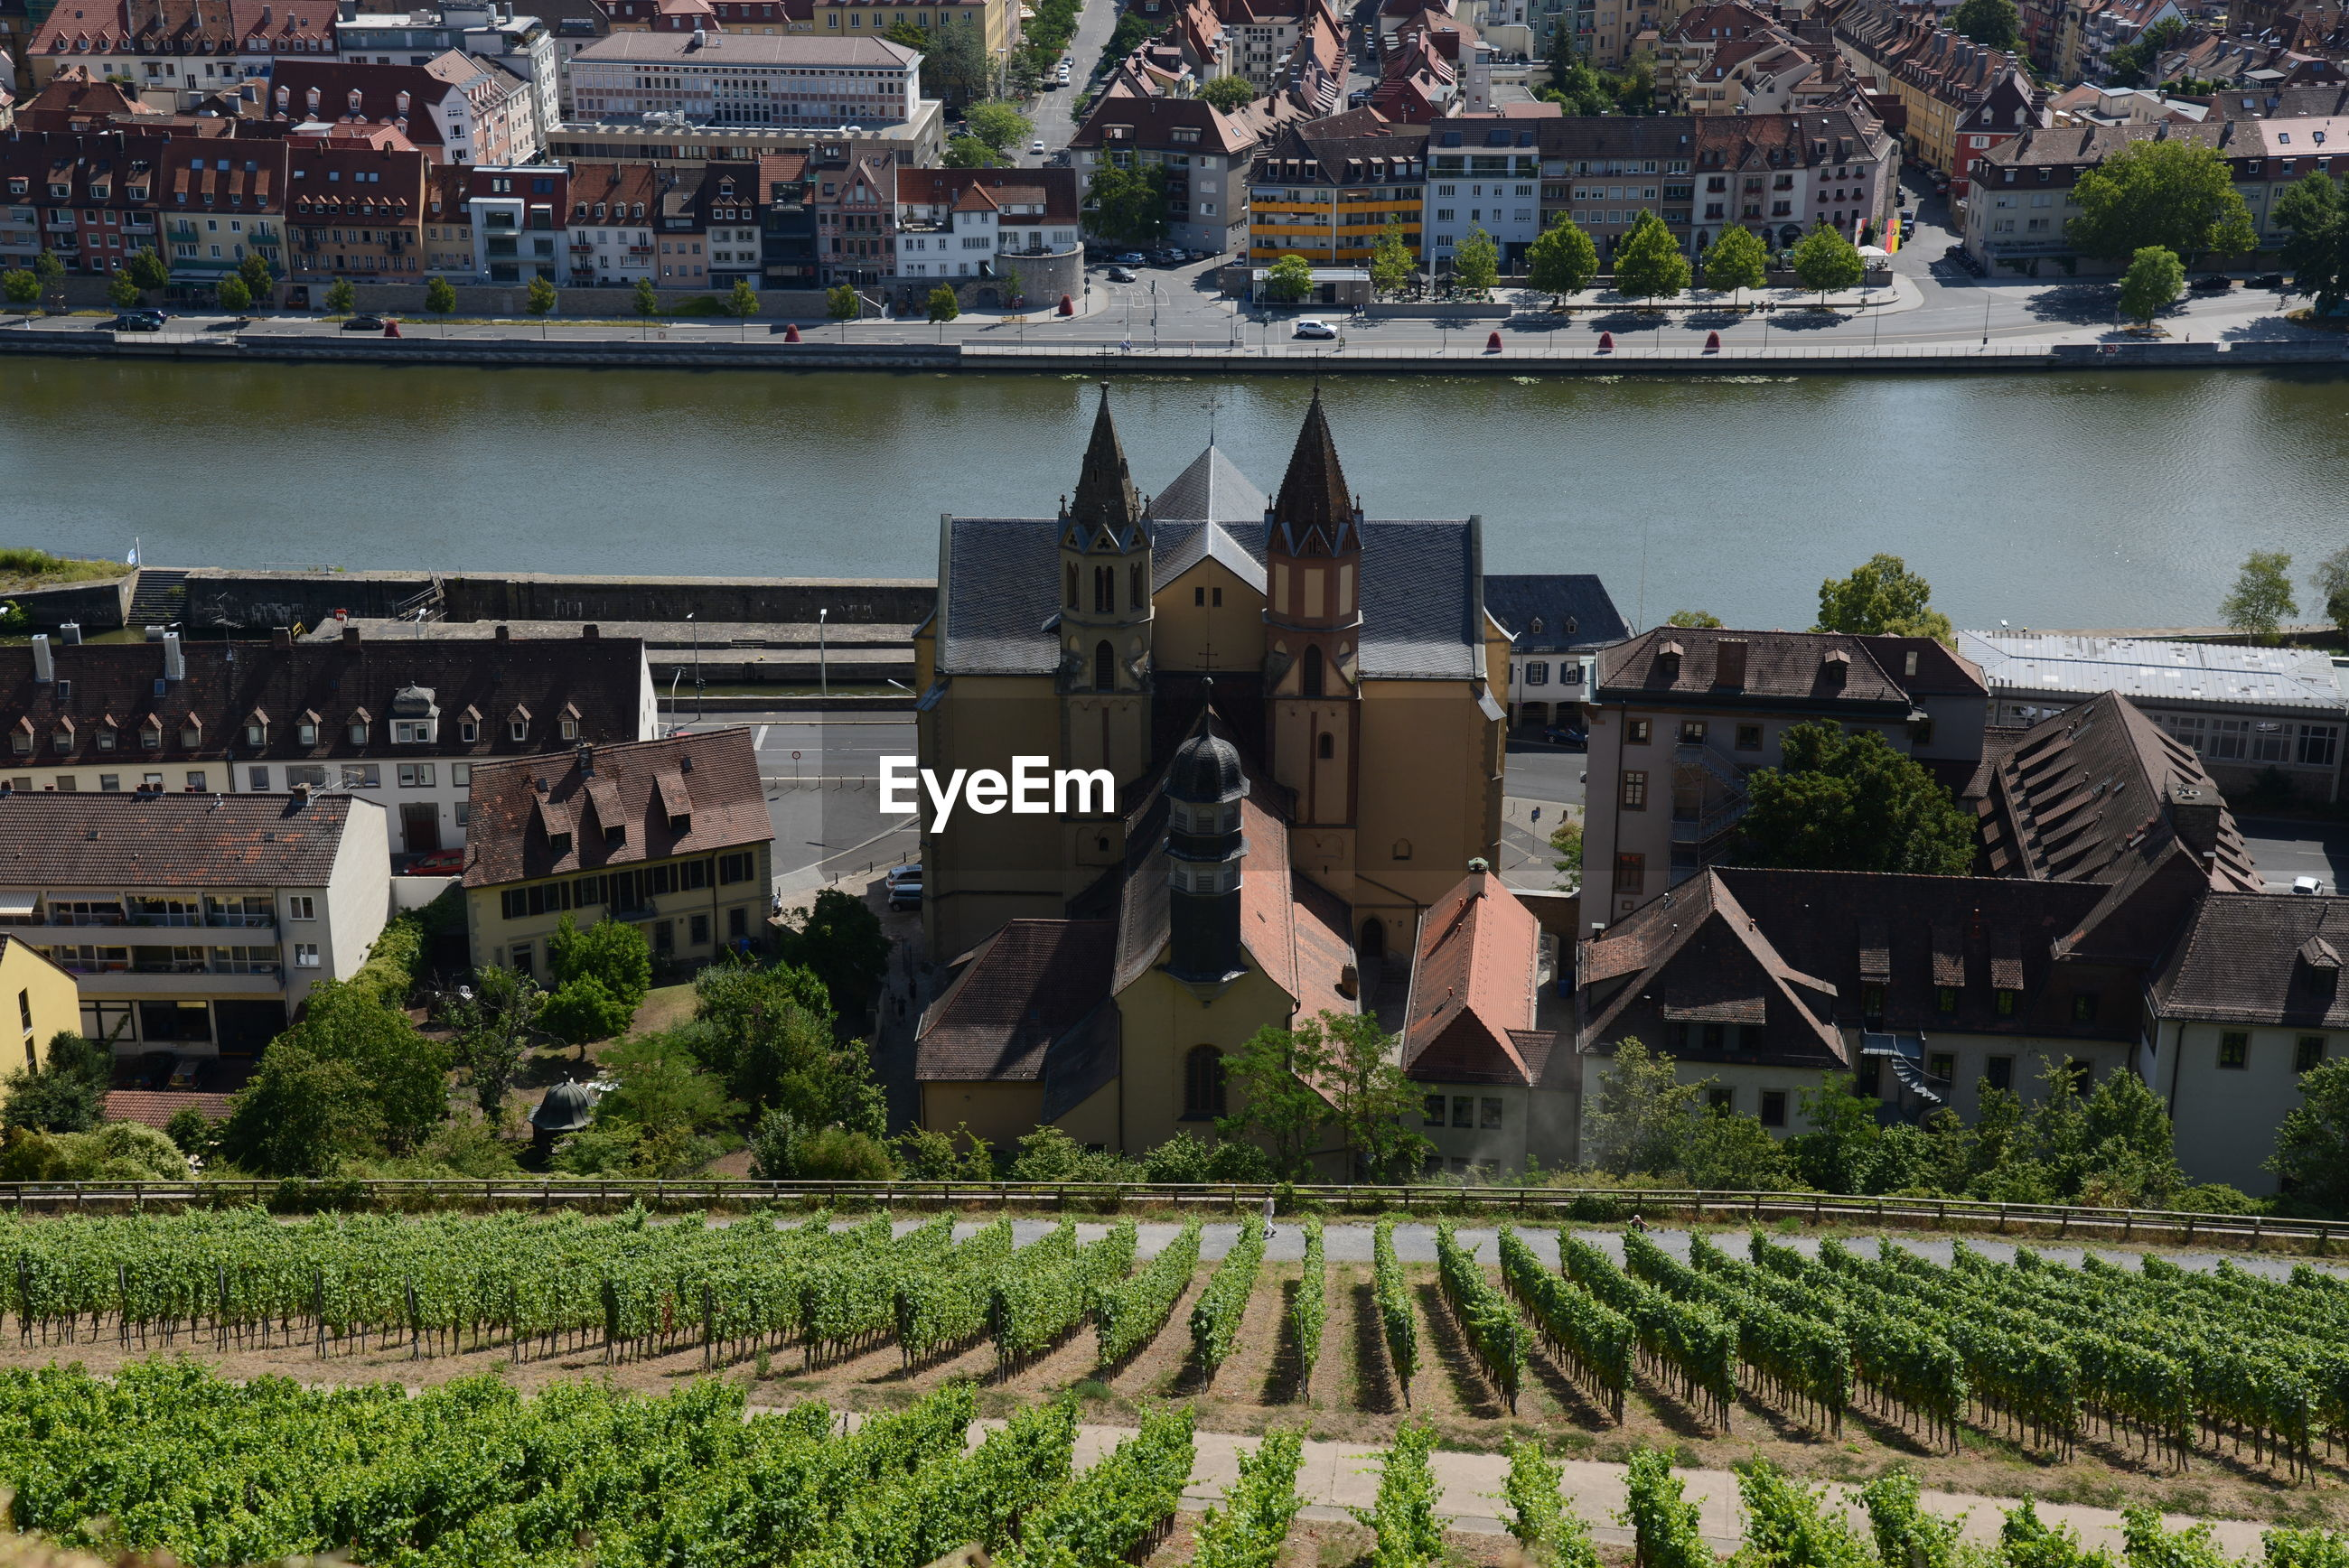 HIGH ANGLE VIEW OF BUILDINGS BY RIVER